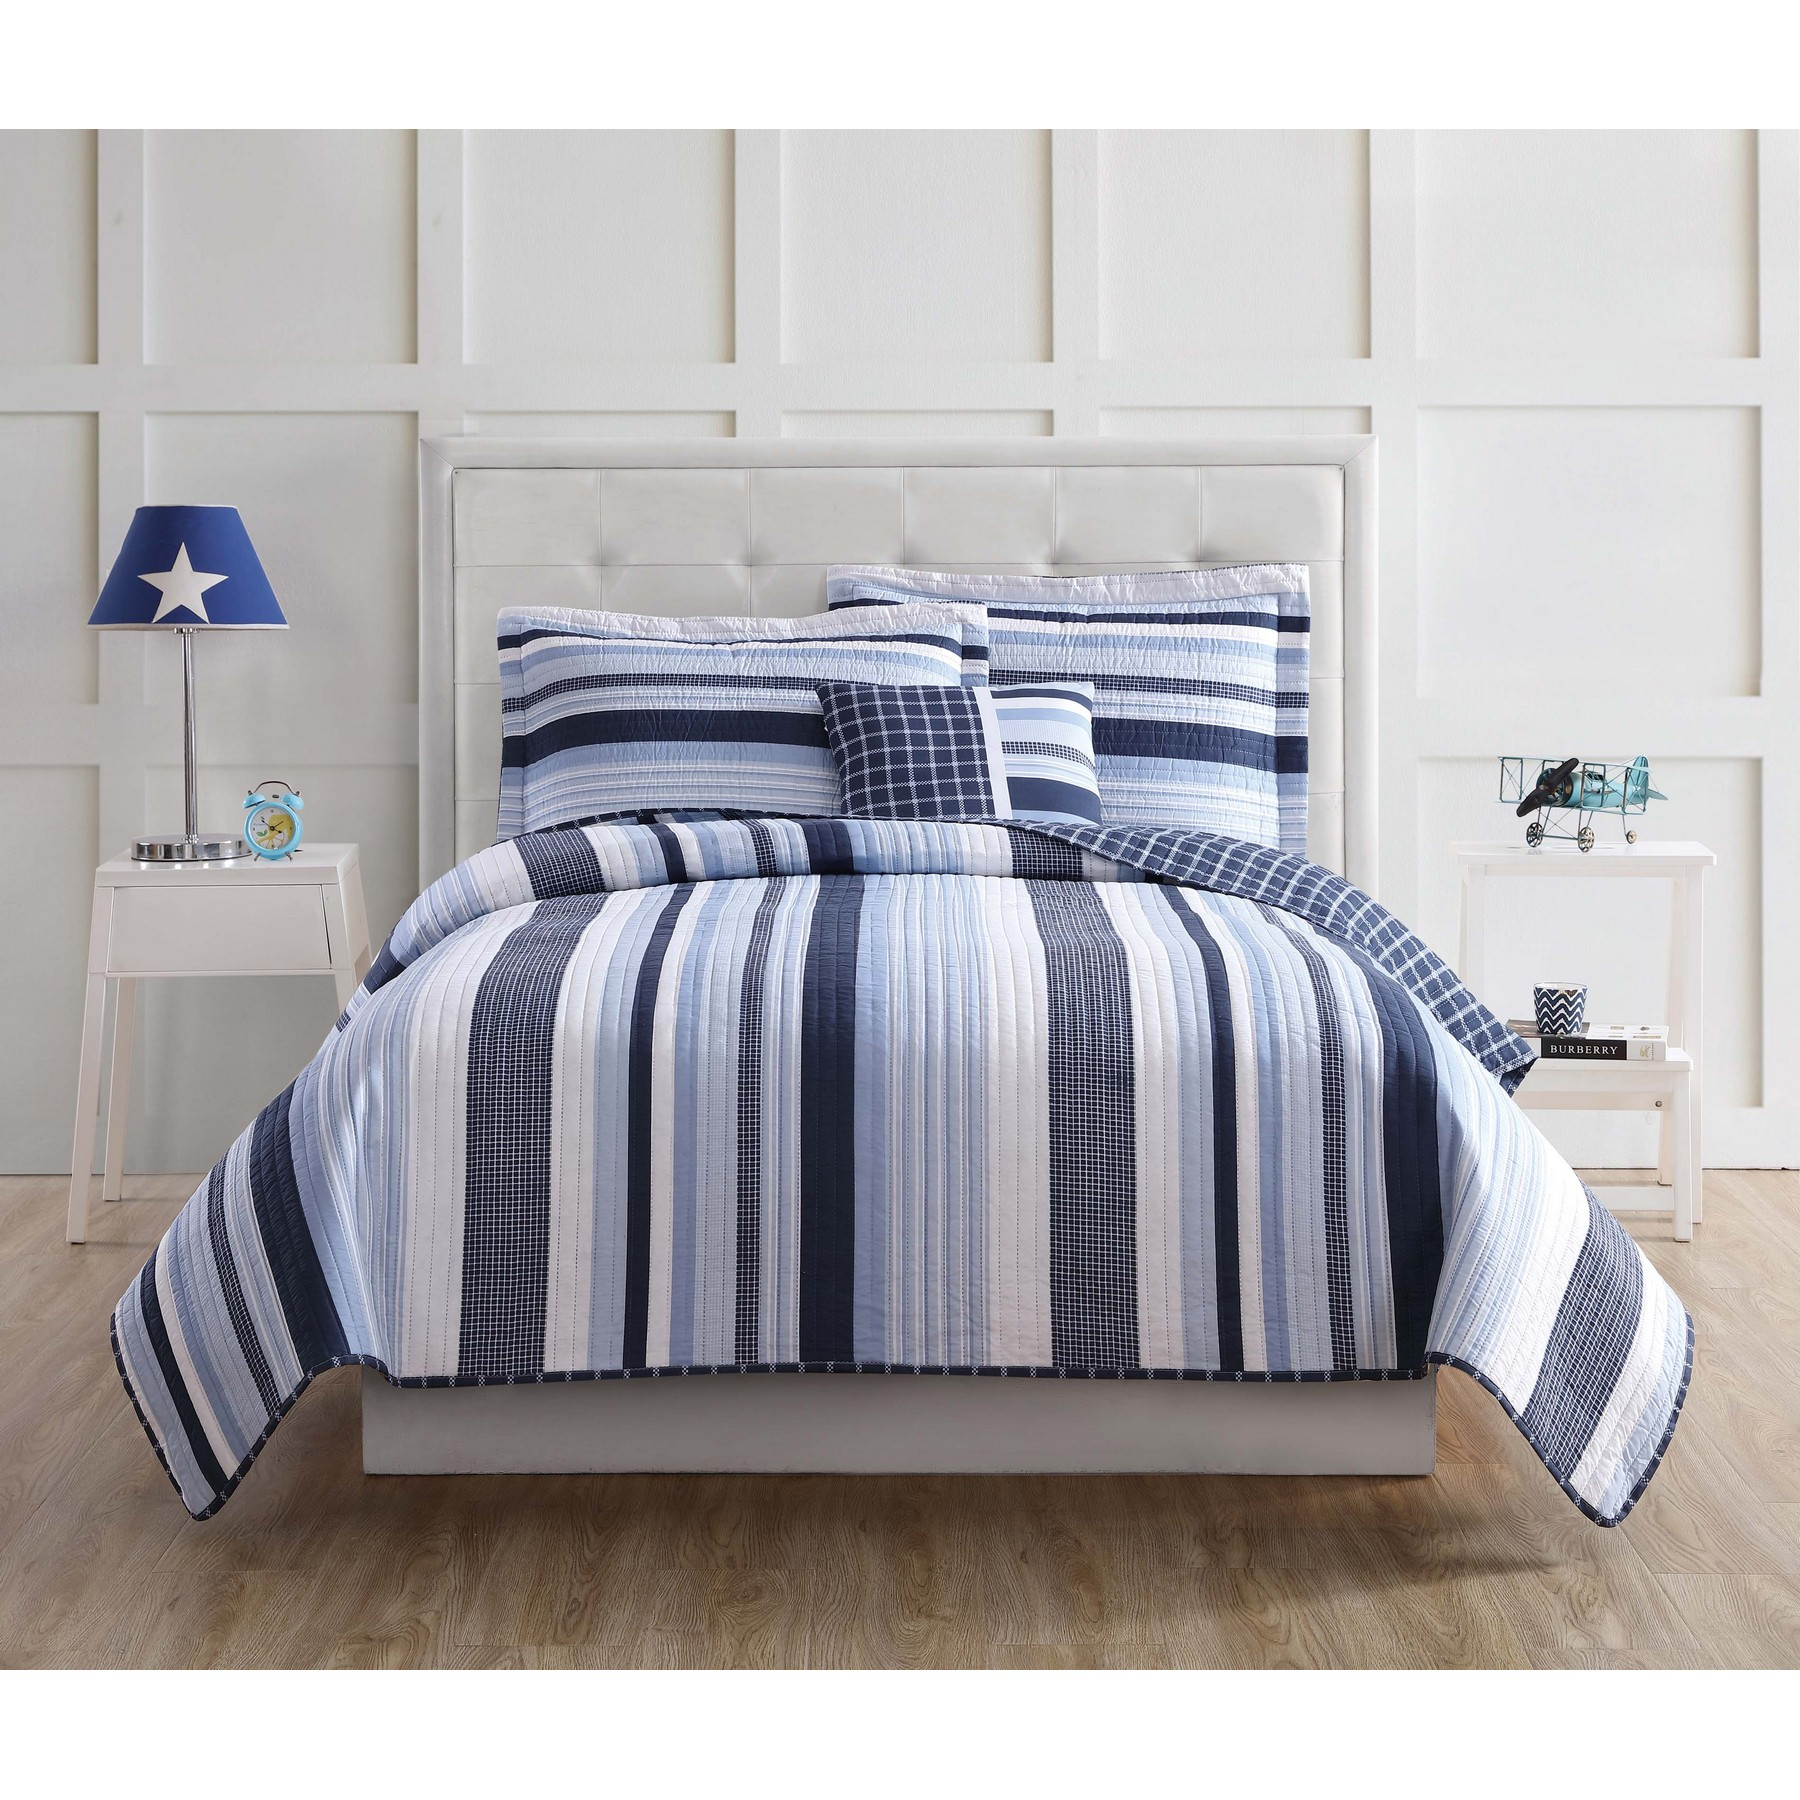 Laura Hart Kids Mason Stripe Twin Quilt Set with BONUS Decorative Pillow